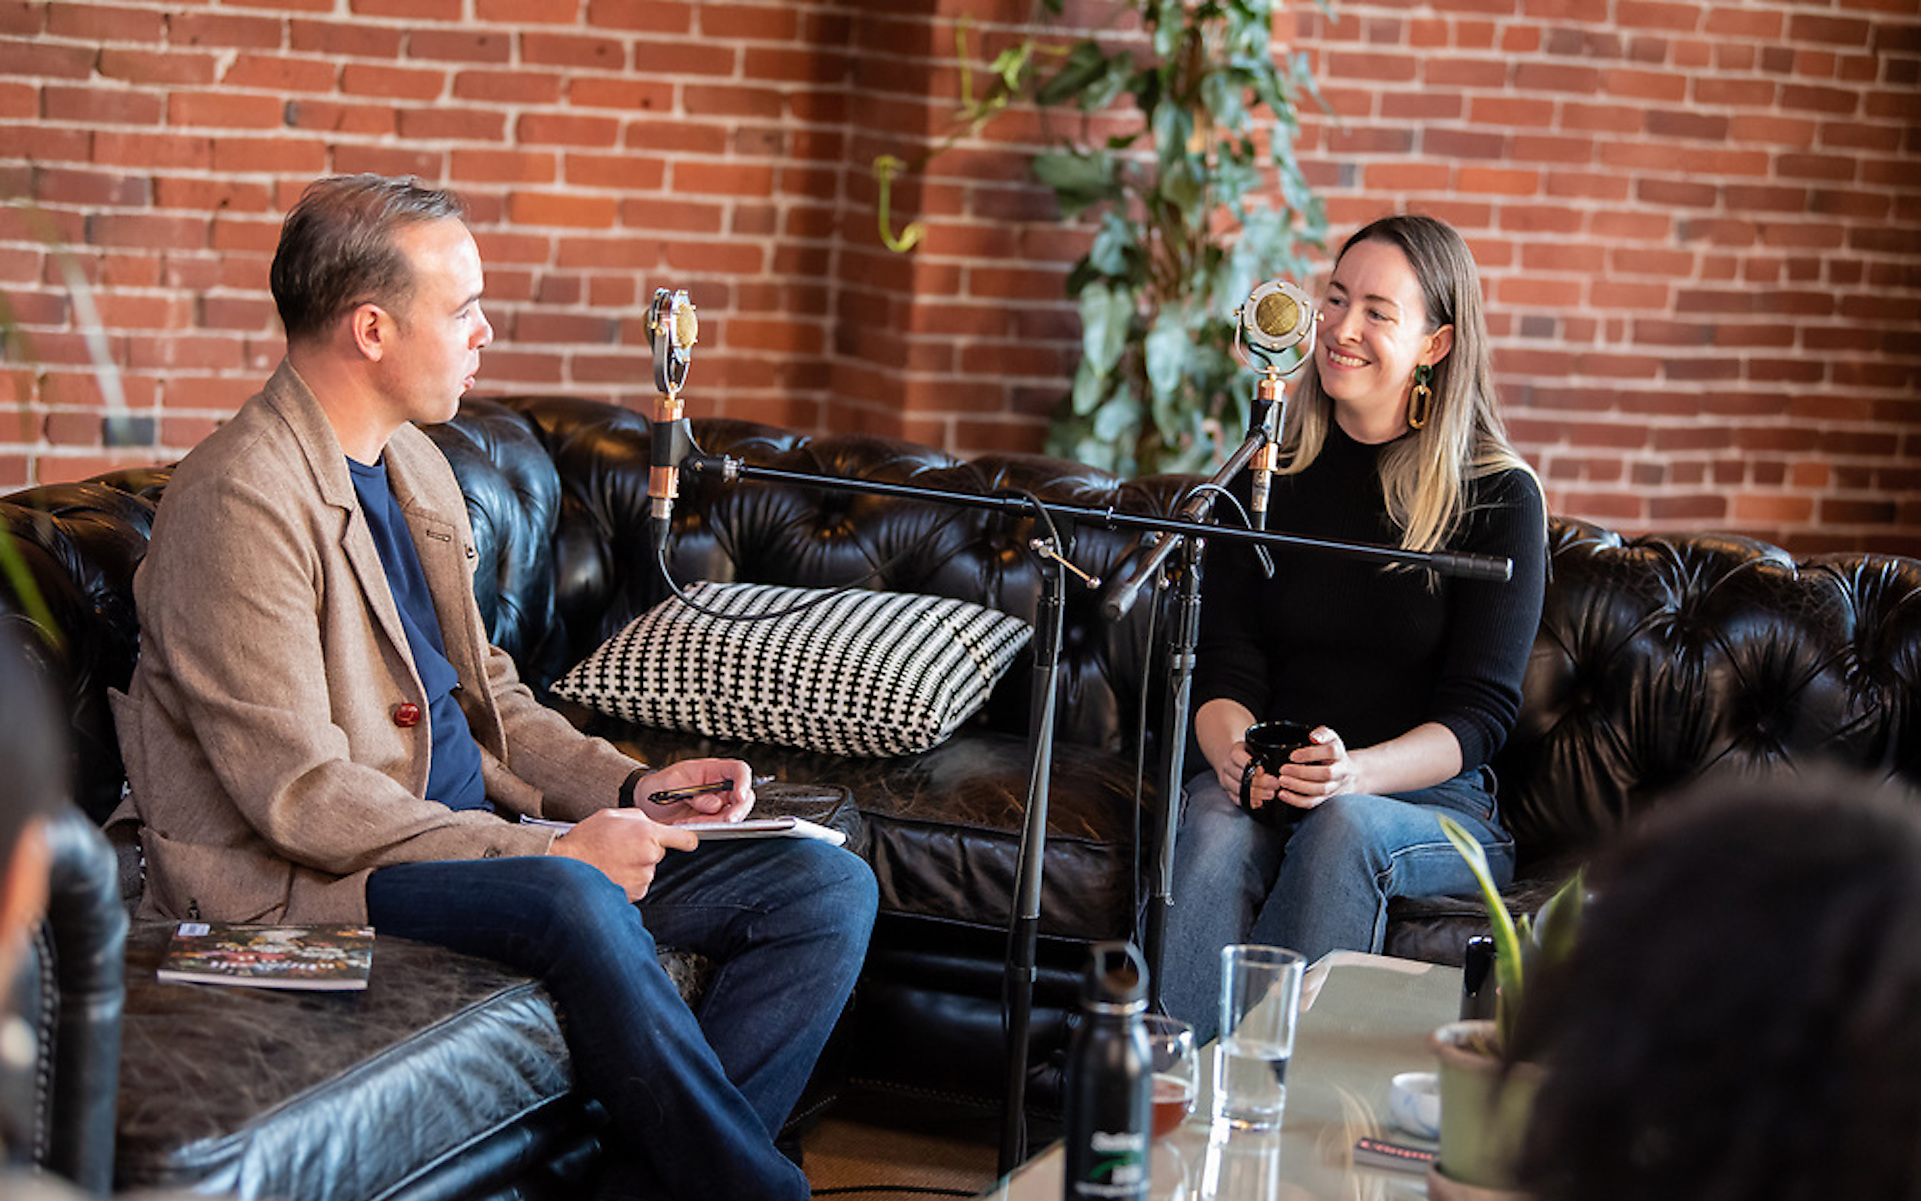 Broccoli founder Anja Charbonneau, with The Hash podcast co-host David Downs, at Listen Up Portland Feb. 17. (Photo by Casey Campbell | Courtesy Listen Up Portland)